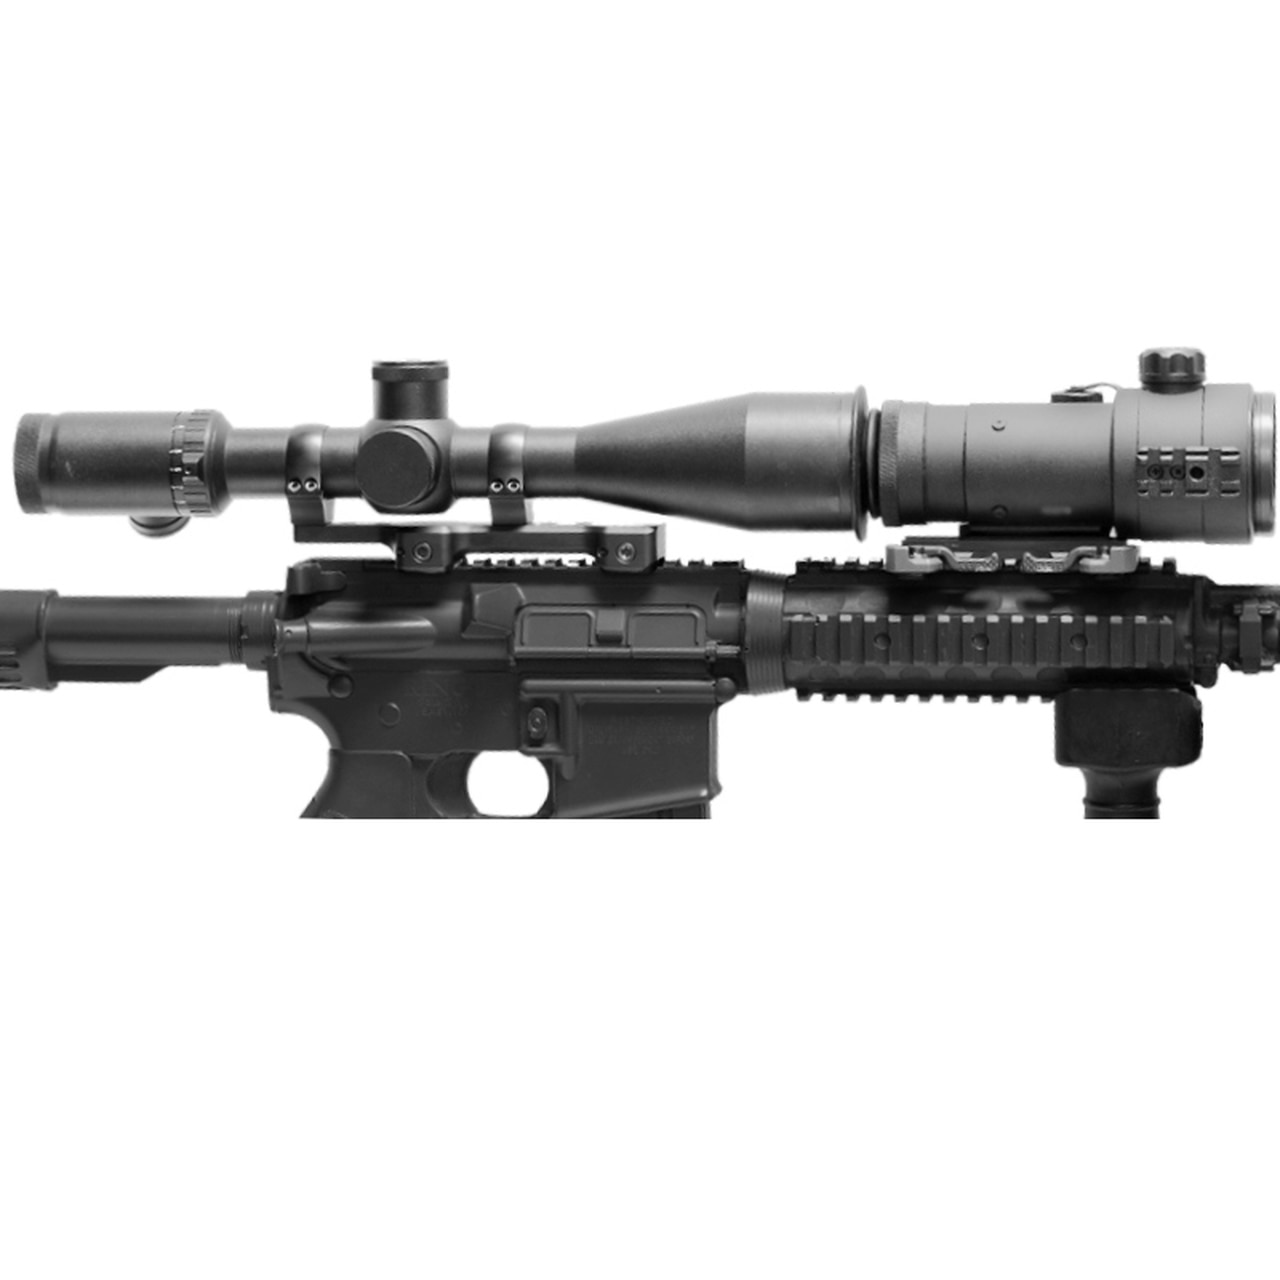 GSCI ナイトビジョン スコープクリップオン GSCI CNVD-22 Clip-On Scope / Gen 3 / グリーン / 1600-1799 / None